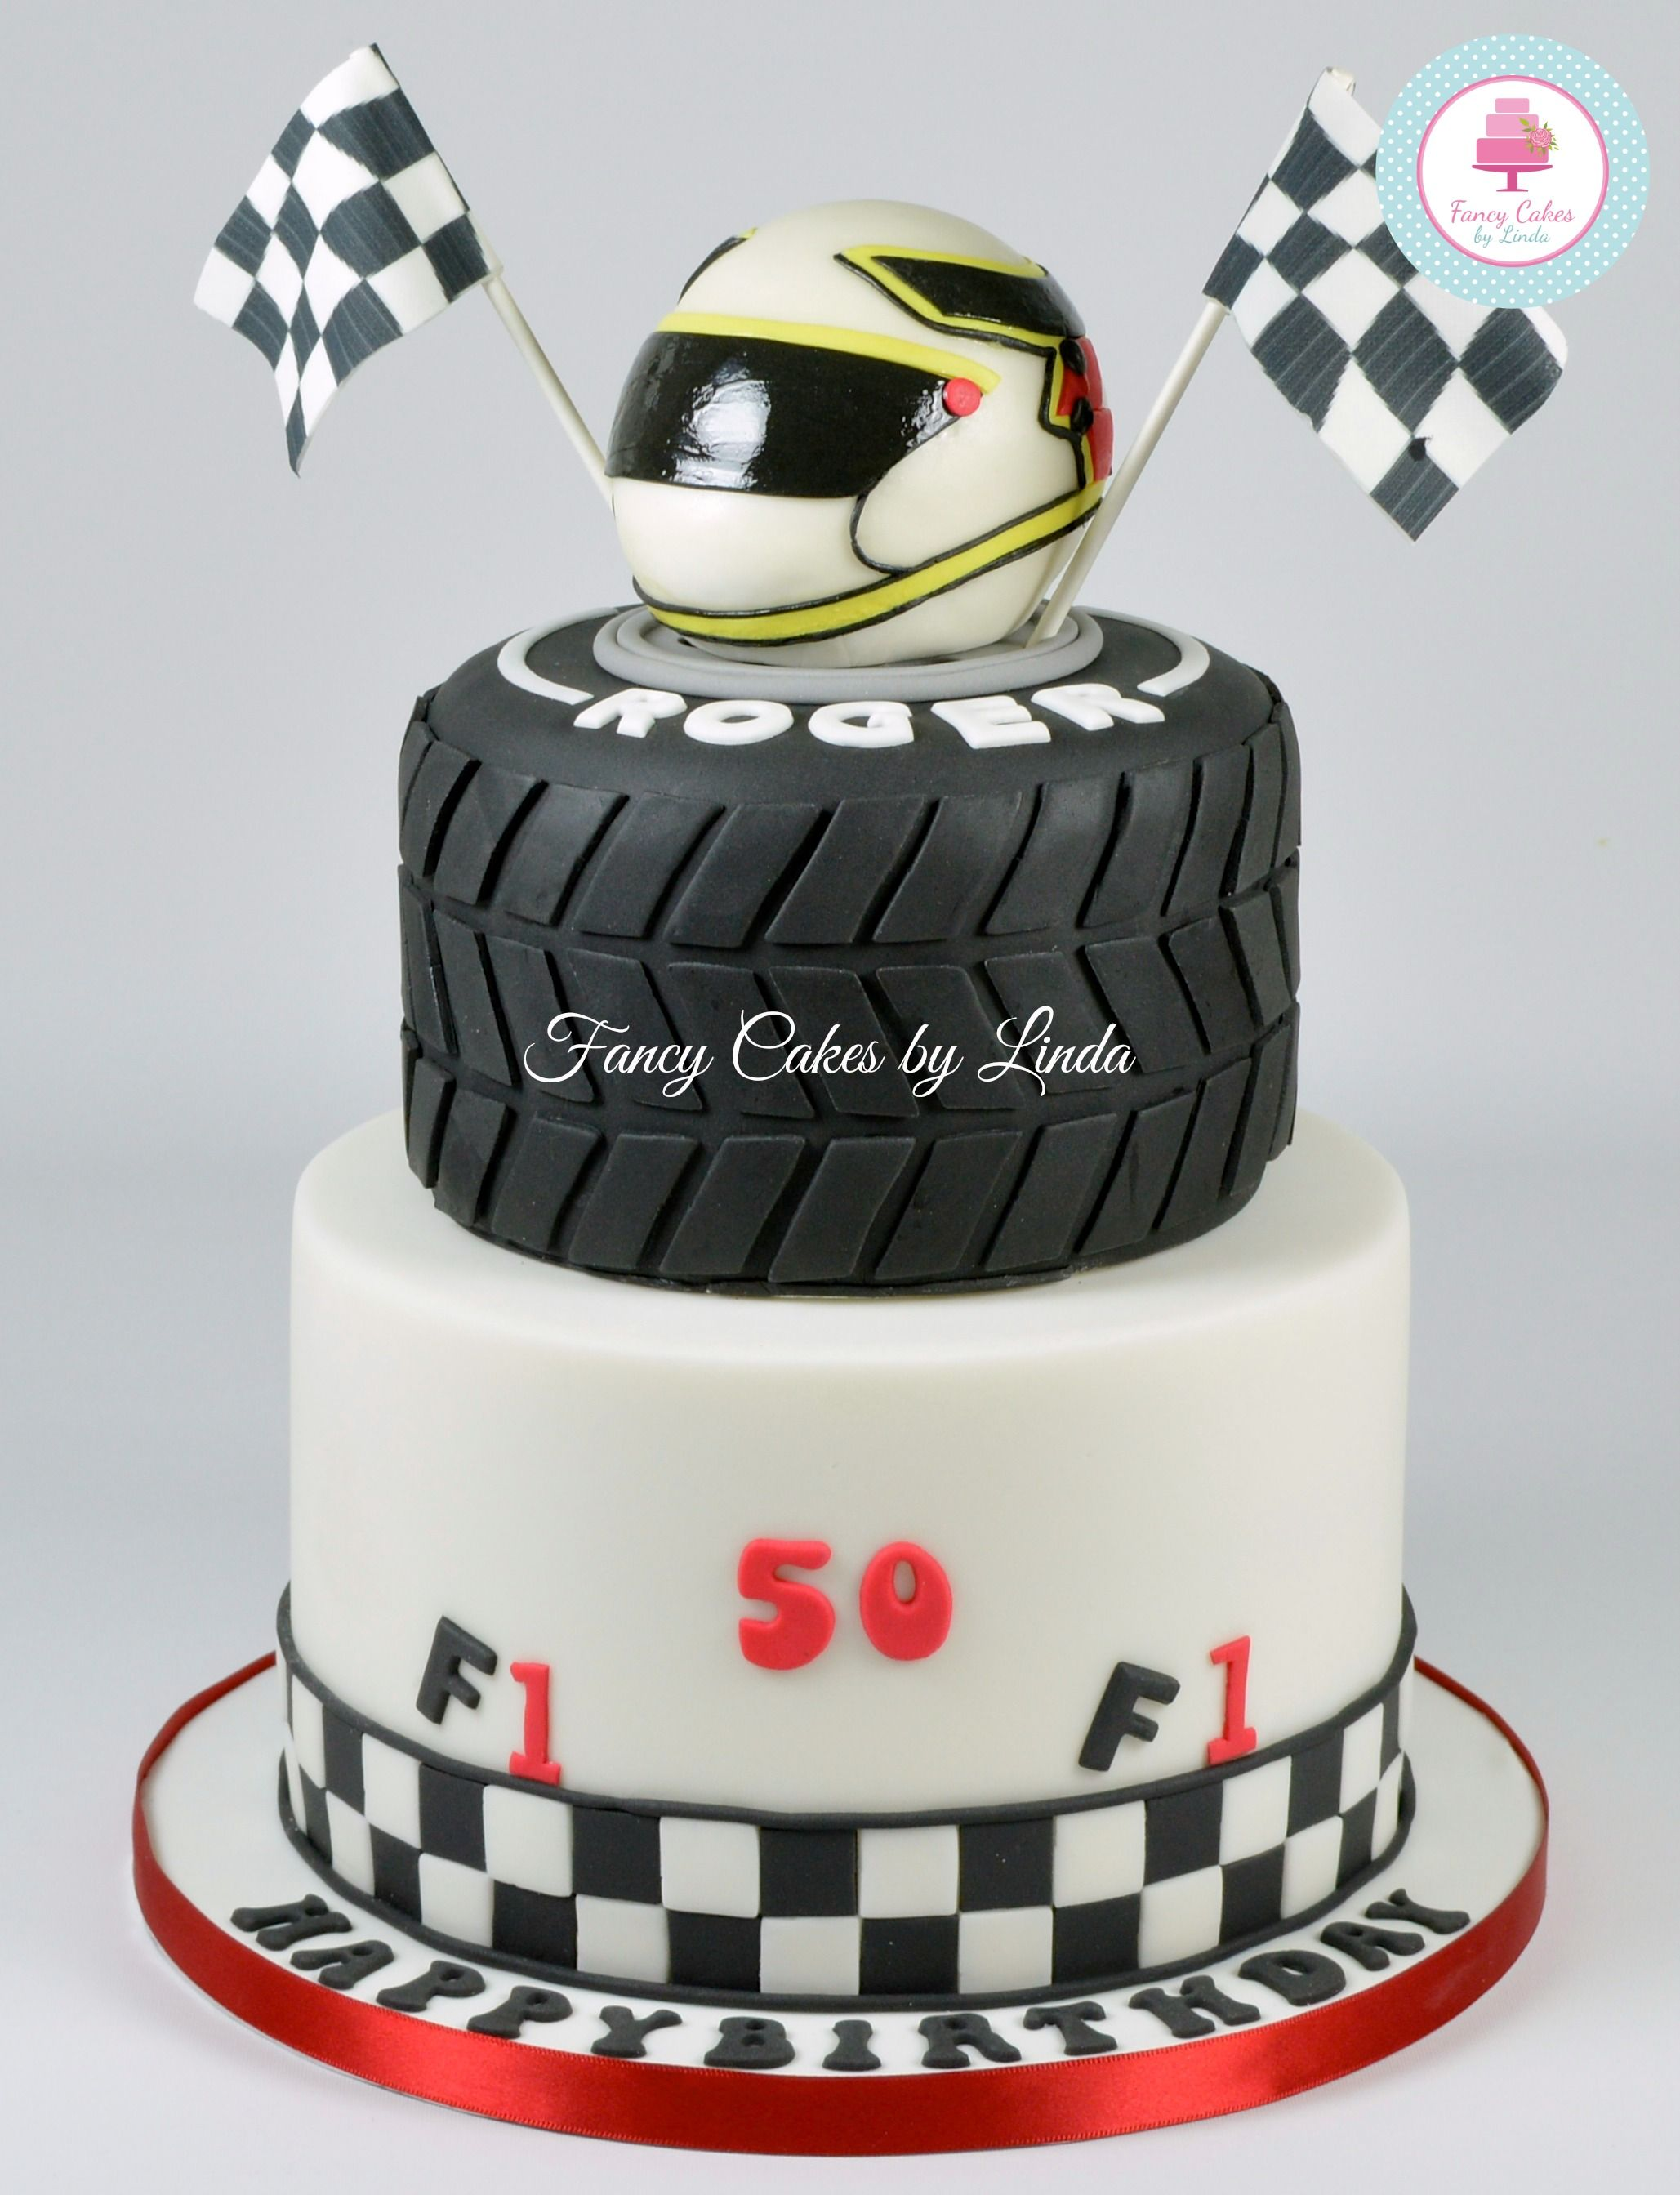 f1 car cake template - cars cake autos post